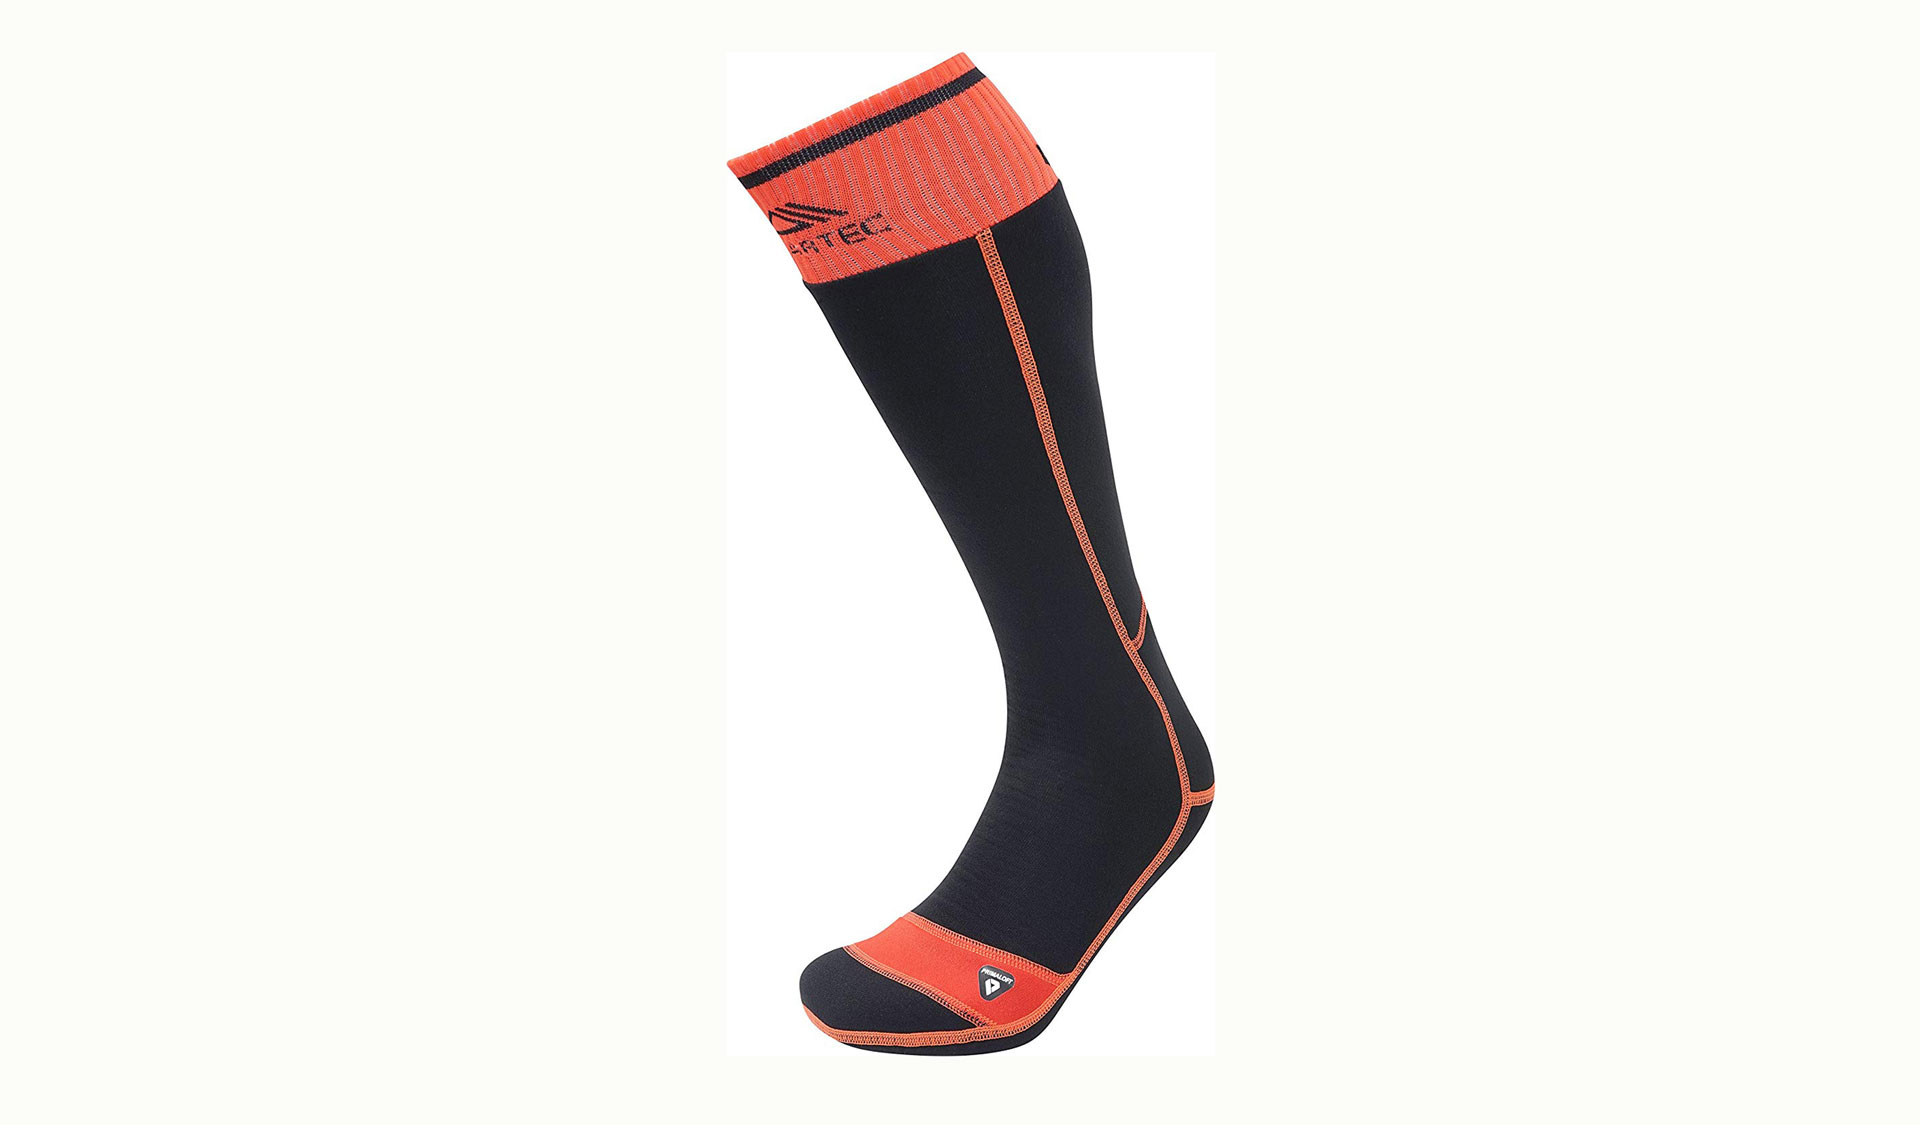 Lorpen T3+ Expedition Trekking Socks Review